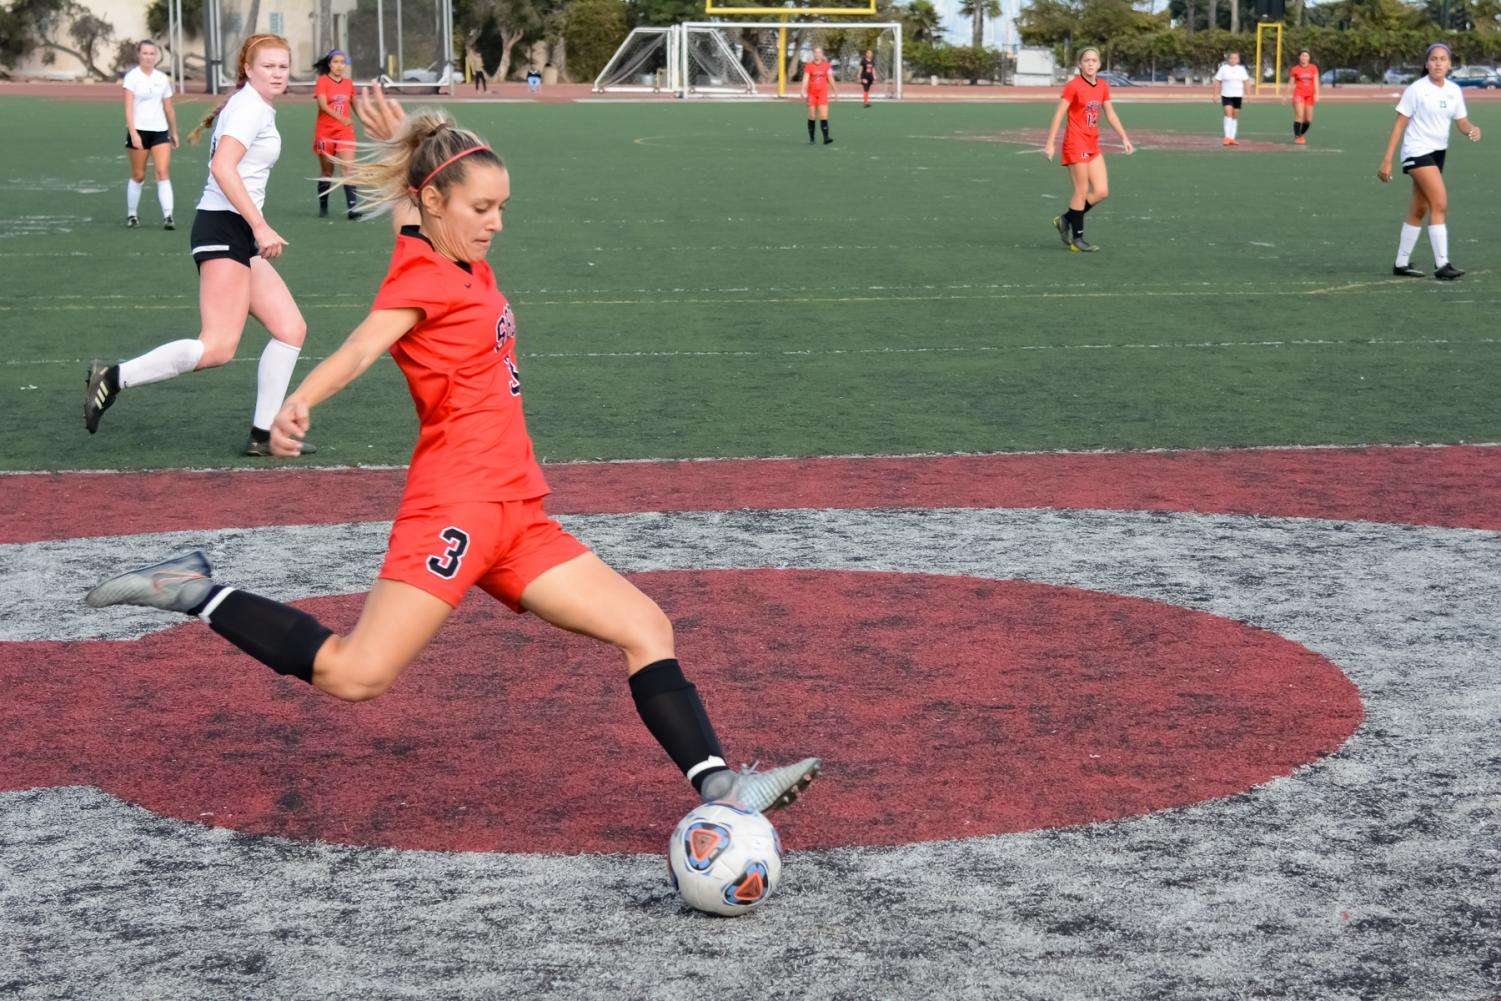 Taylor Valle (No. 3) takes a shot towards the goal during the second half of the game against Moorpark College on Nov. 15, 2019 at La Playa Stadium at City College in Santa Barbara, Calif. The Vaqueros won the game 5-0.